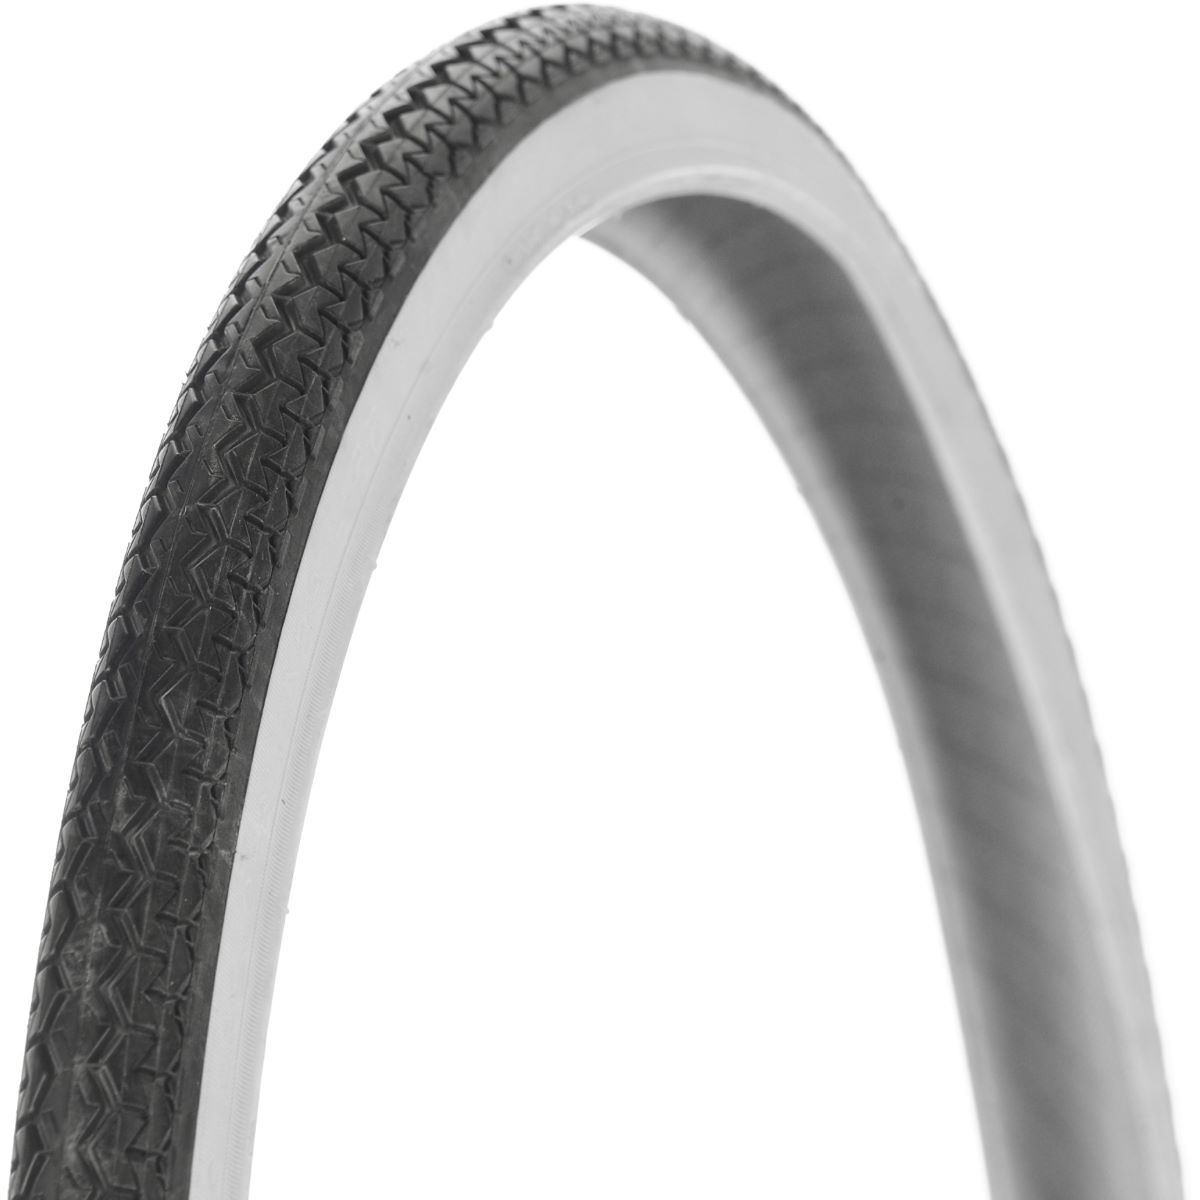 Pneu Michelin World Tour Bike - 650b 35b Wire Bead Black - White